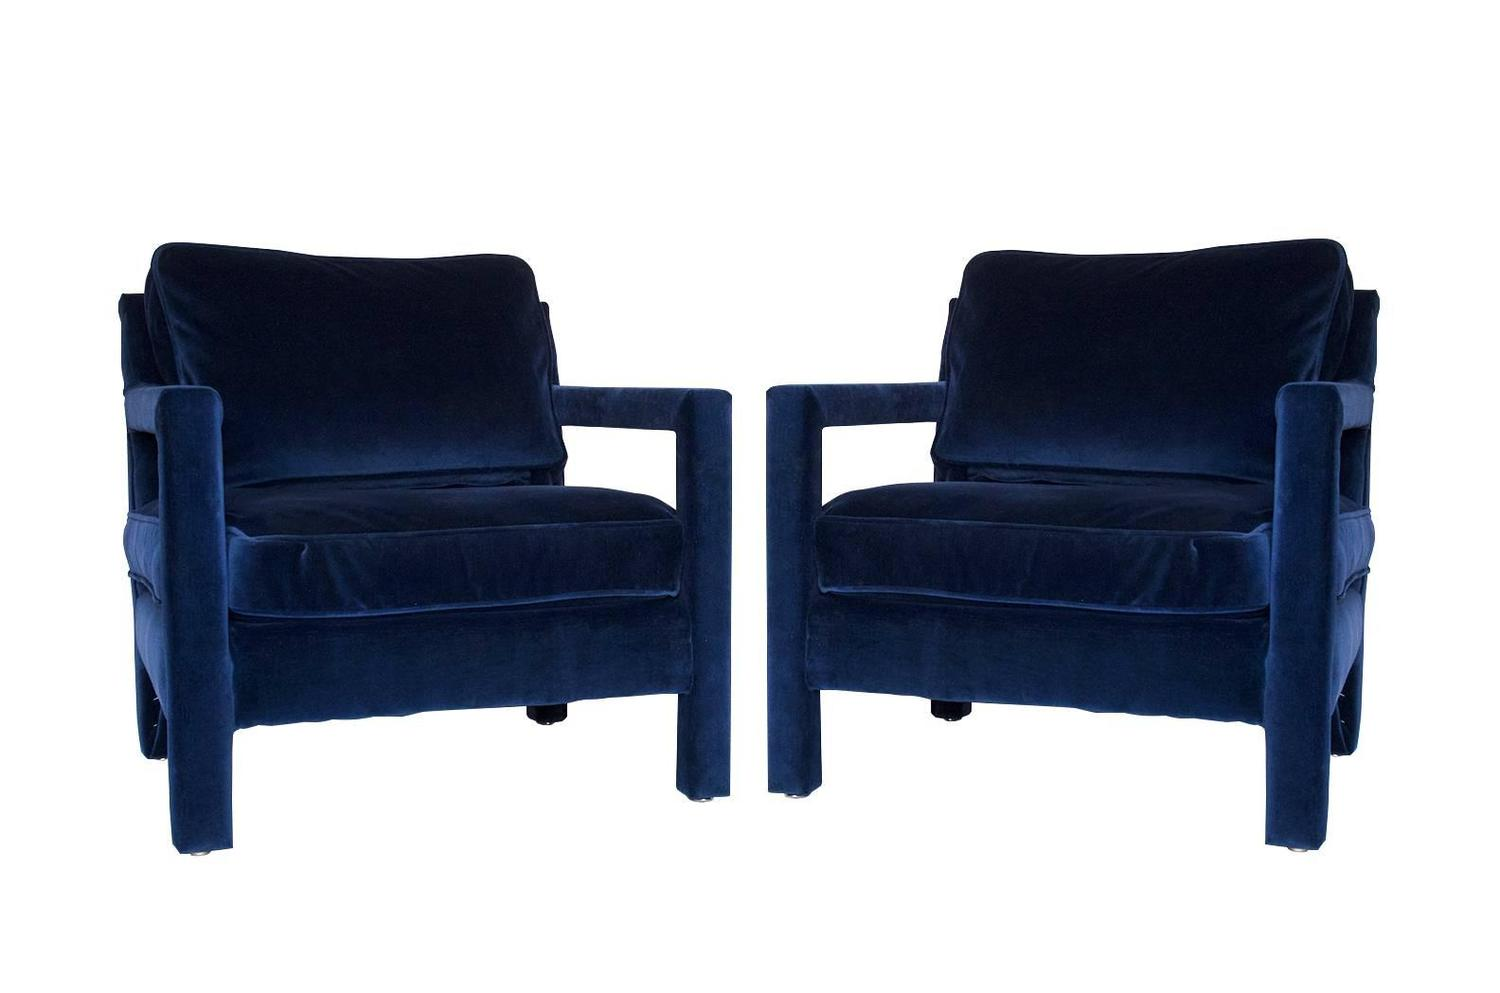 Pair of milo baughman style parsons lounge chairs at 1stdibs for What is a parsons chair style